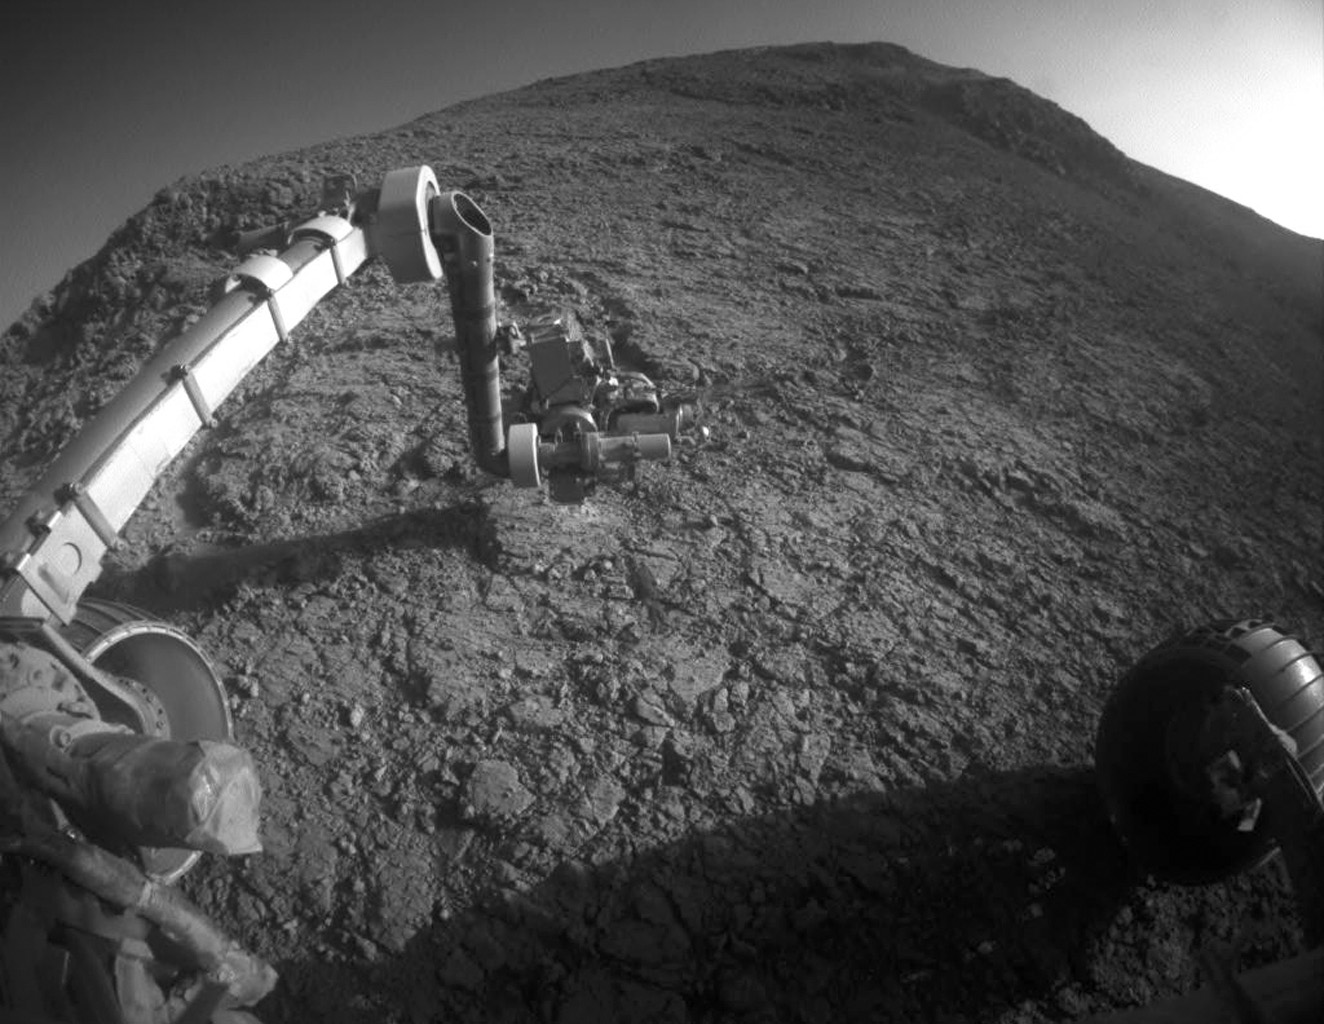 The target beneath the tool turret at the end of the rover's robotic arm in this image from NASA's Mars Exploration Rover Opportunity is 'Private John Potts,' which slices through the western rim of Endeavour Crater.